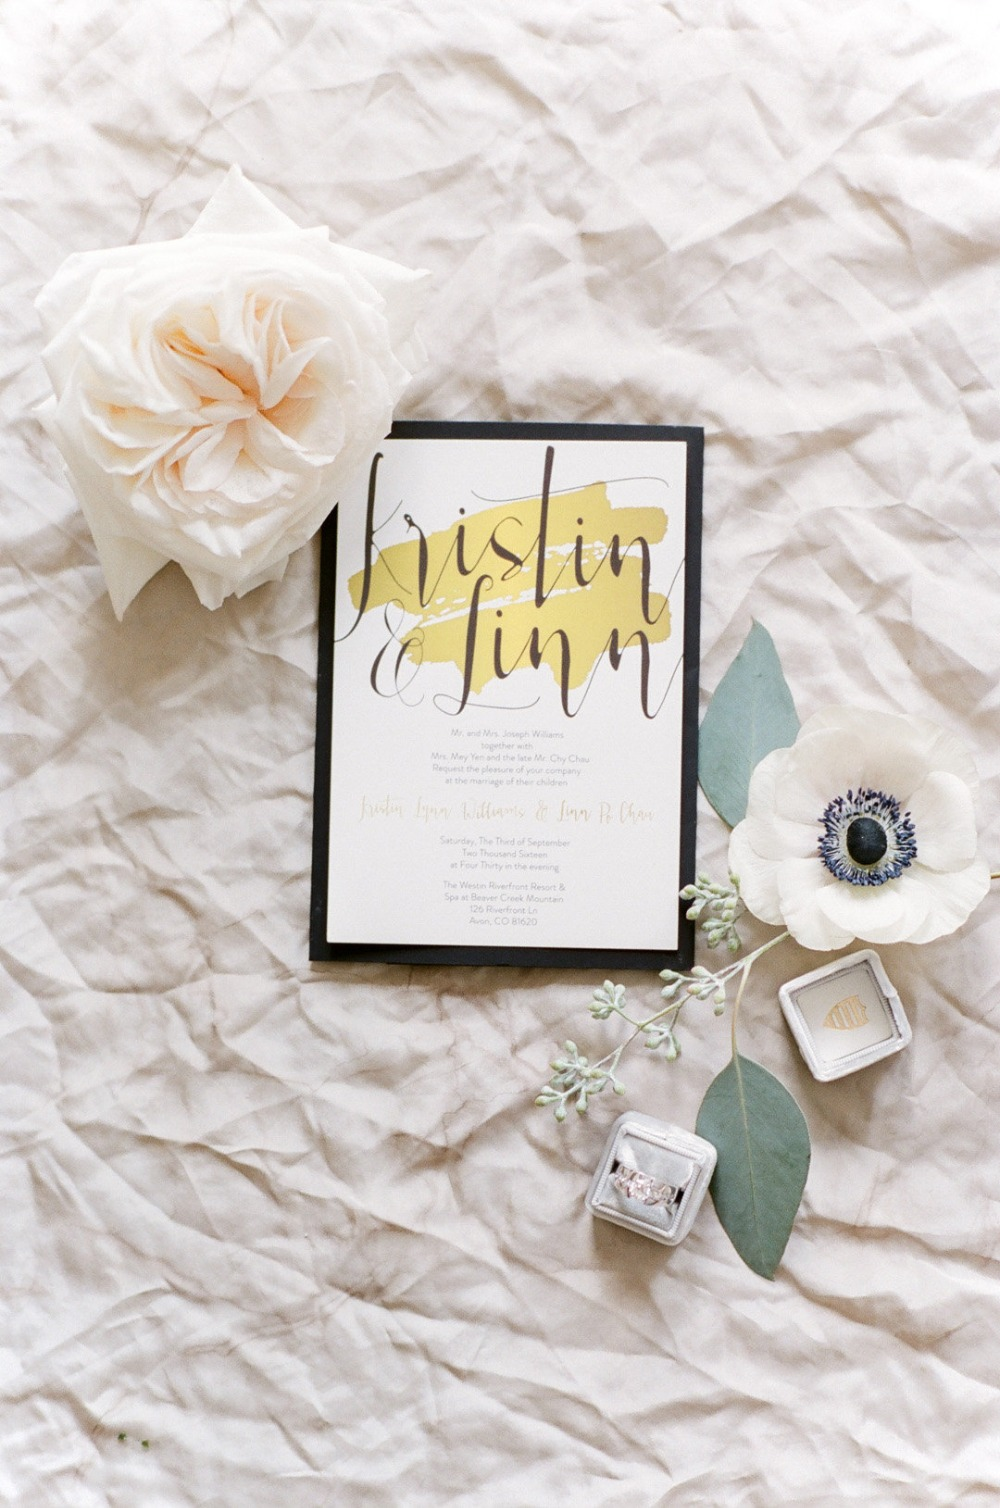 Oh Colorado You Look So Glamorous In This Glittering Garden Wedding!